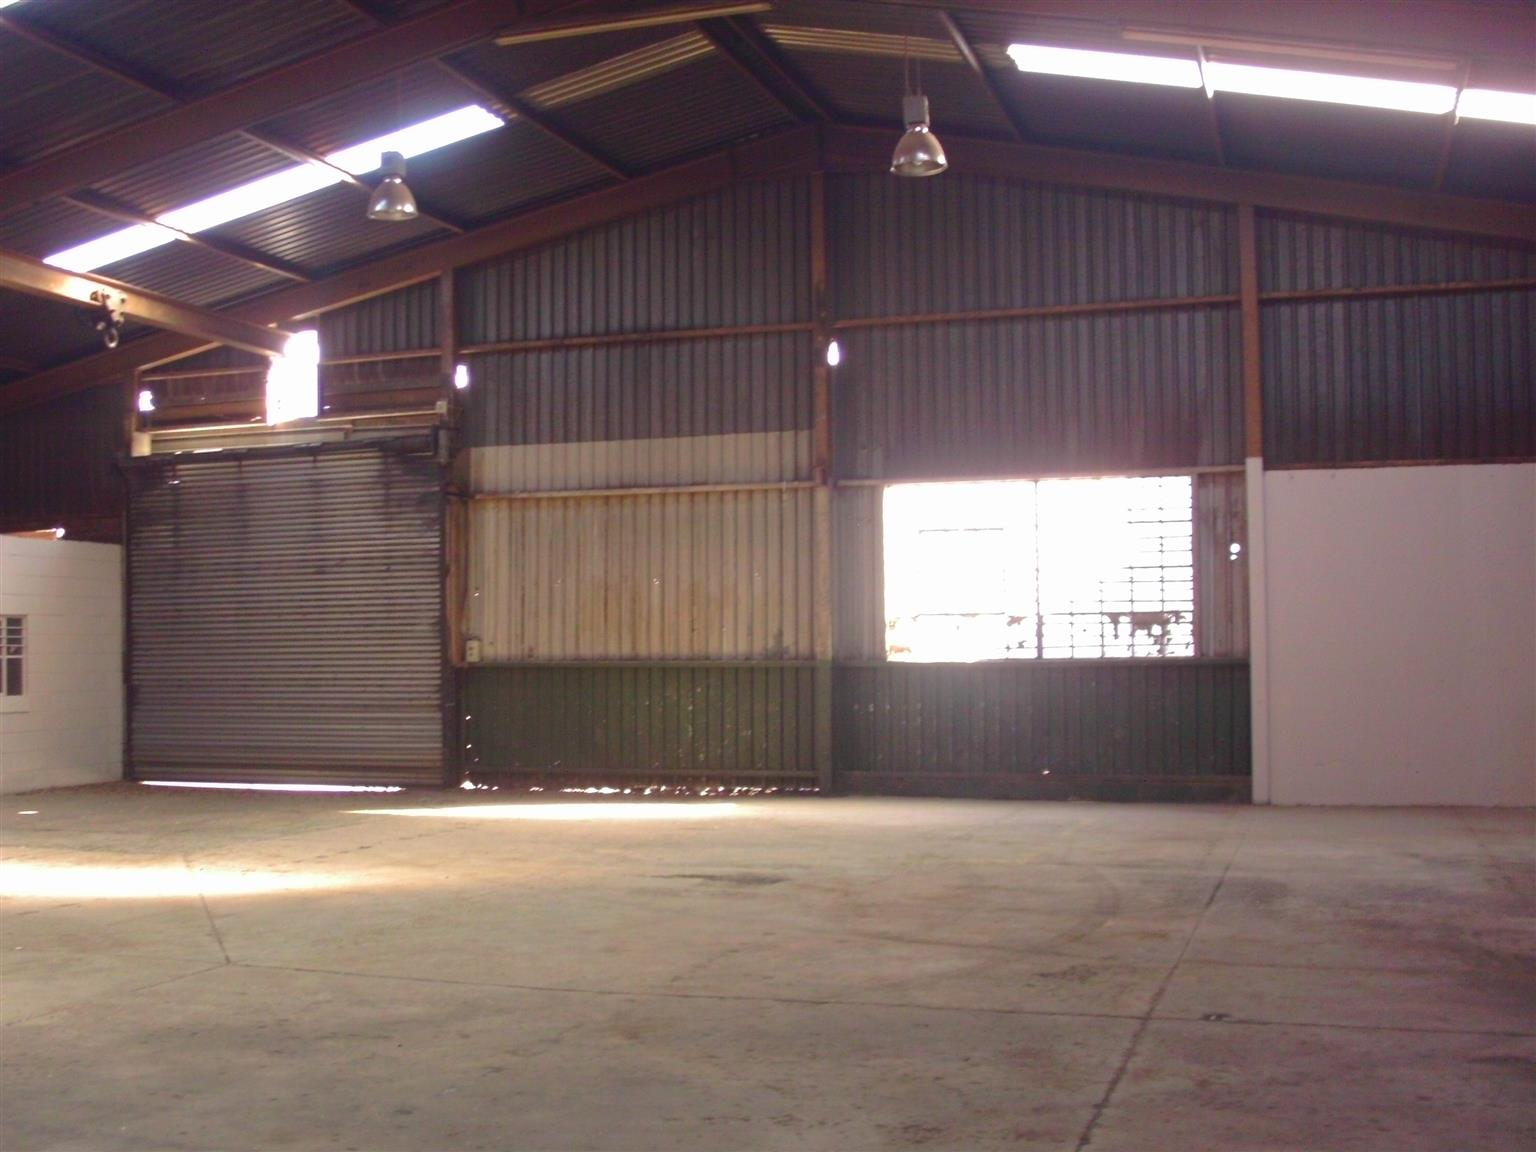 2758² Factory/Warehouse to let in the heart of Anderbolt, Boksburg.